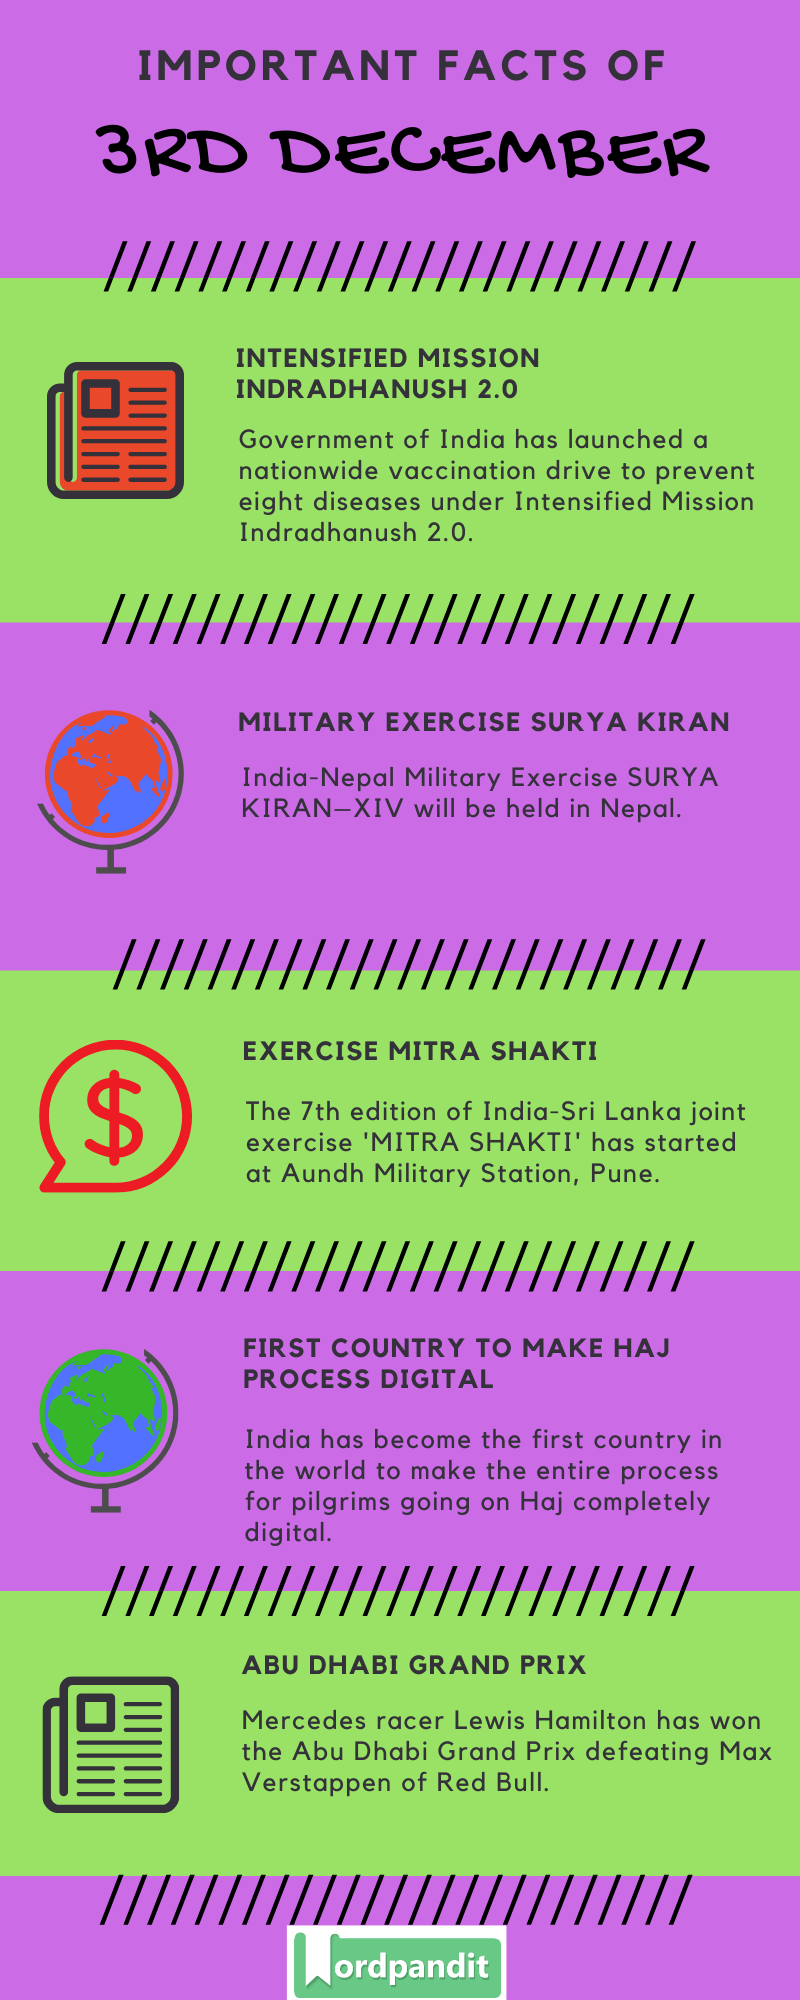 Daily Current Affairs 3 December 2019 Current Affairs Quiz 3 December 2019 Current Affairs Infographic